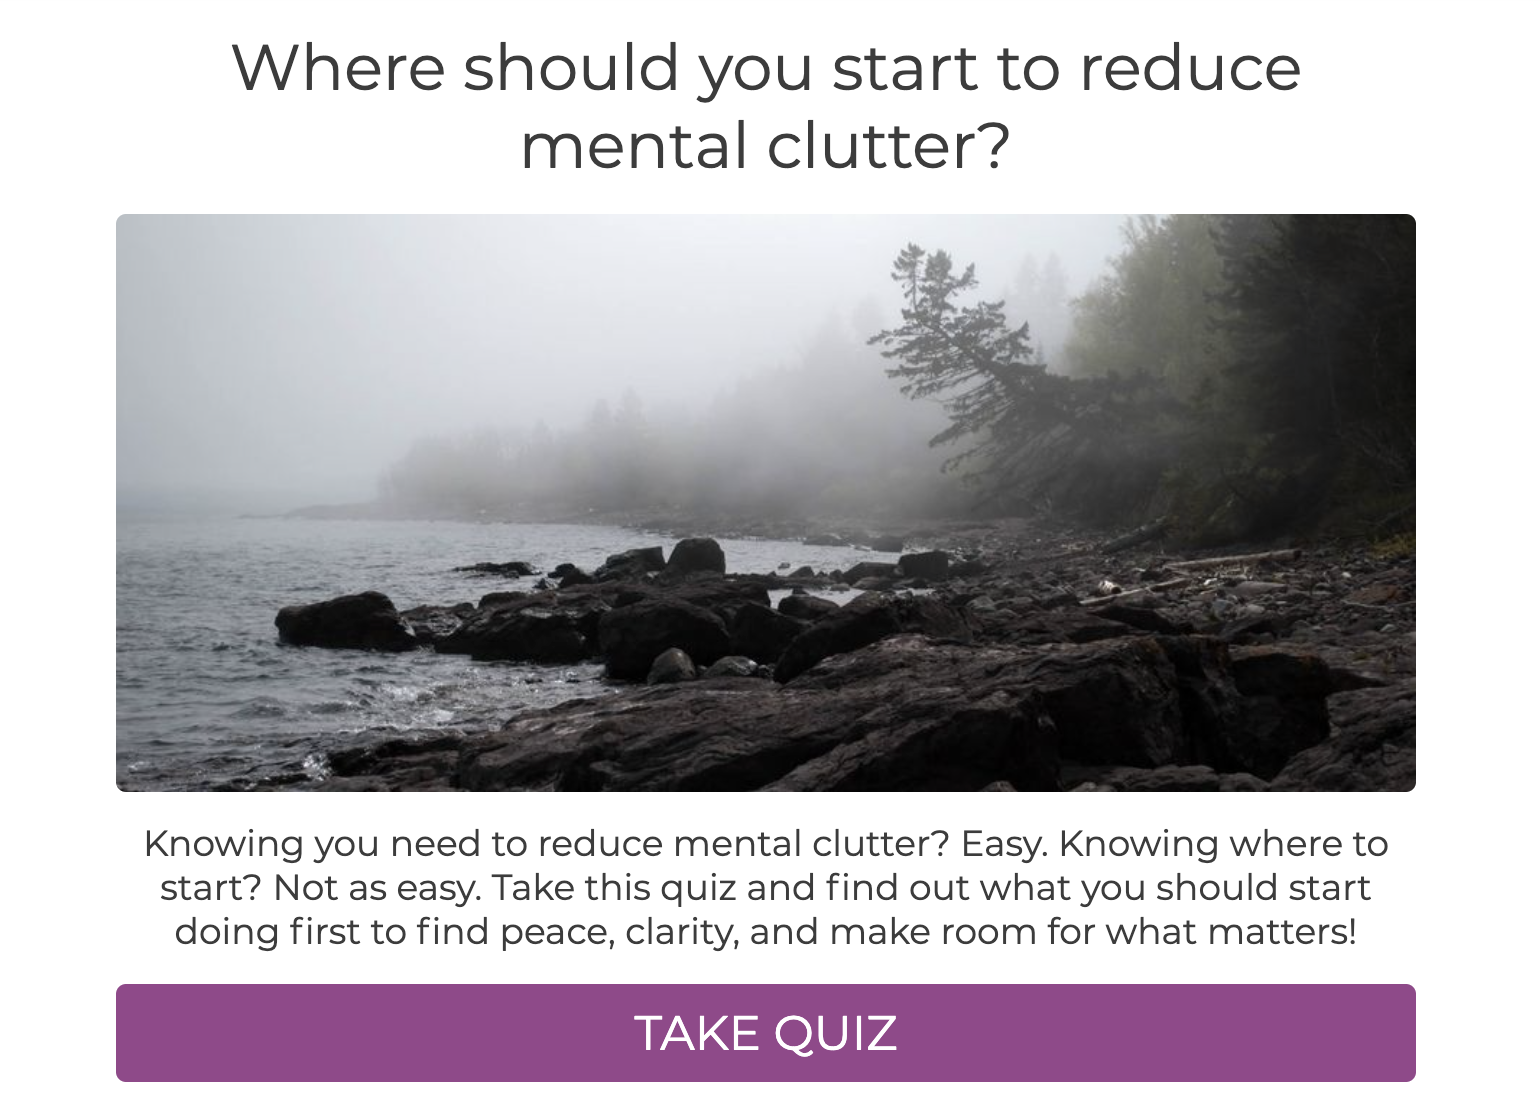 Where should you start to reduce mental clutter quiz cover